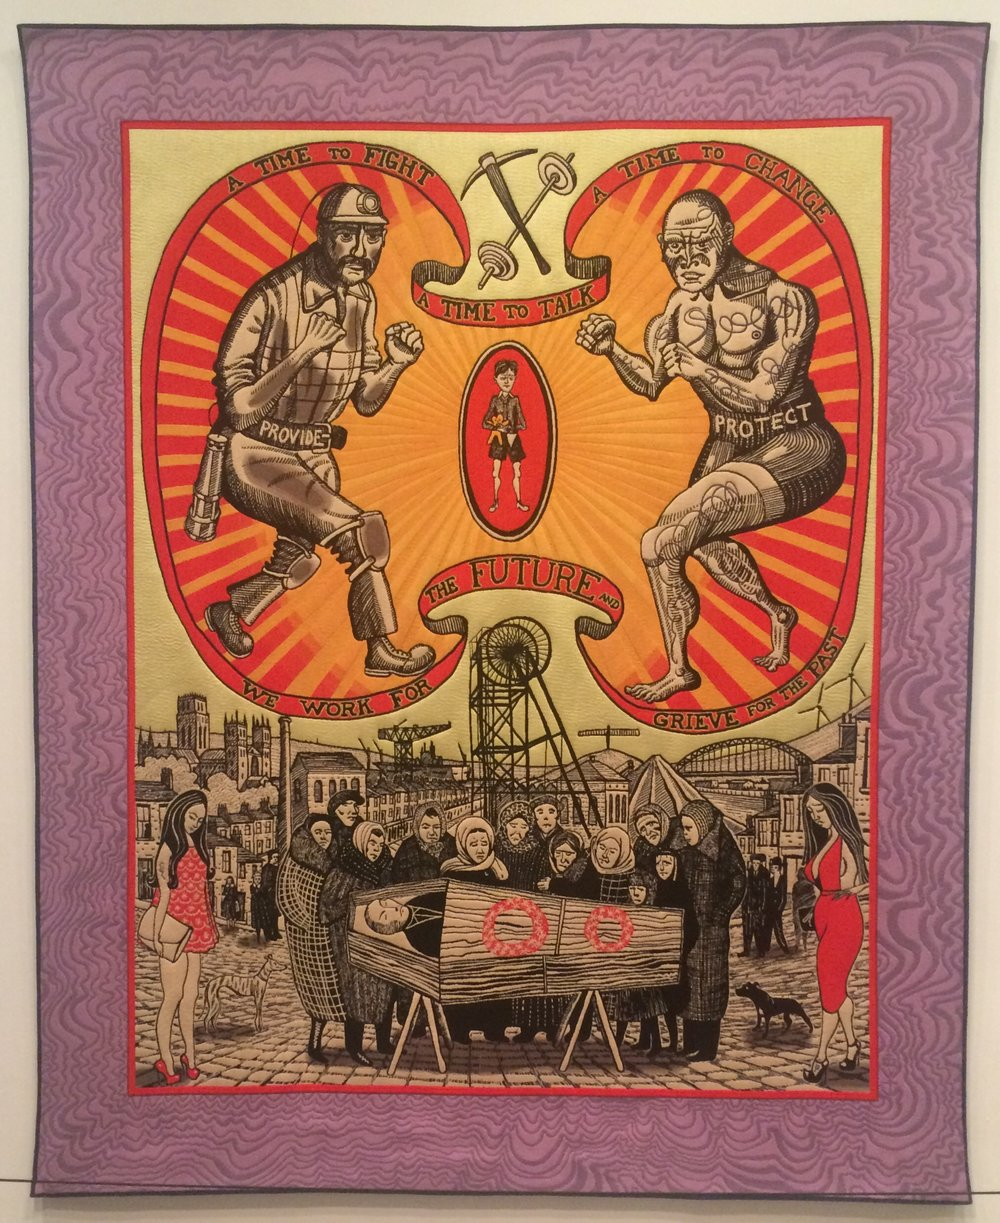 The Most Popular Art Exhibition Ever by Grayson Perry